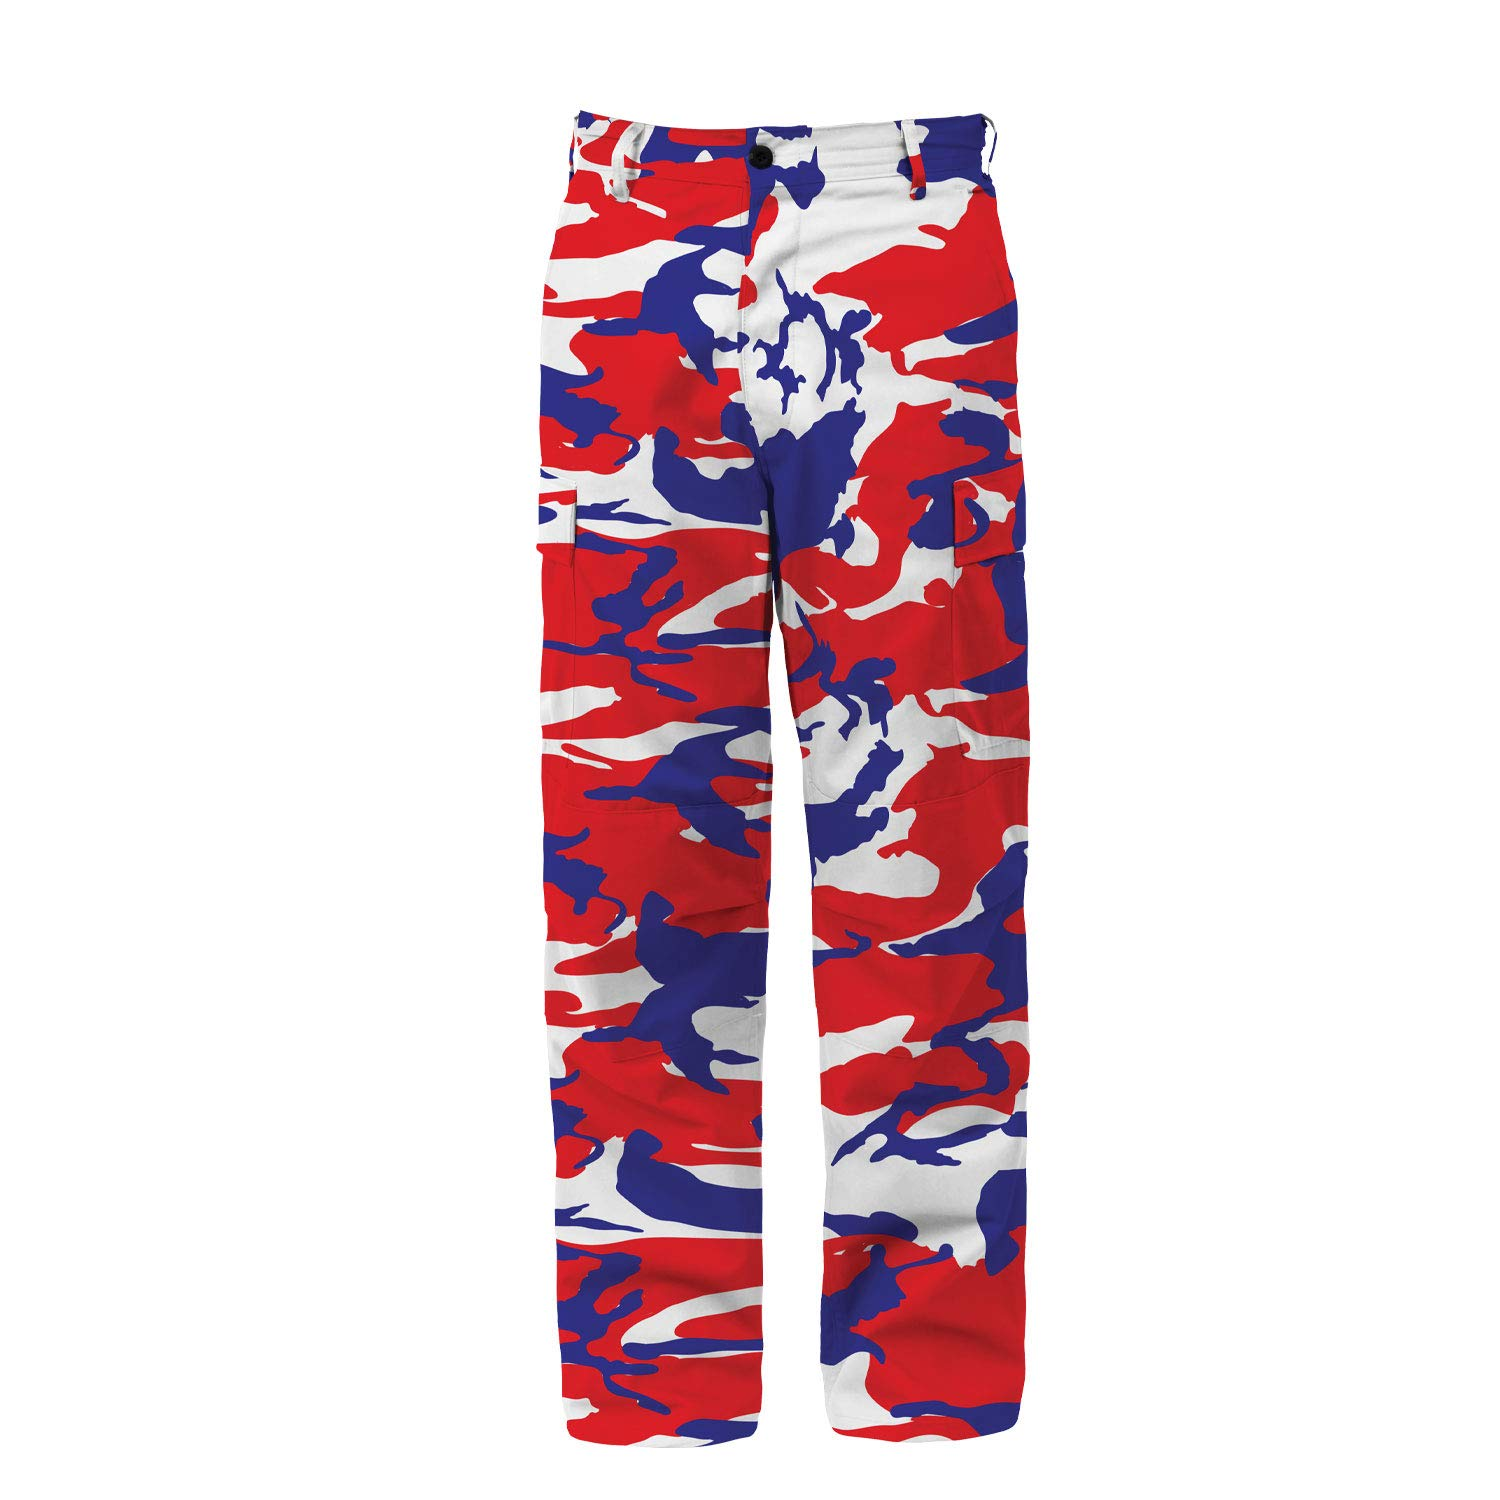 Rothco Camo BDU Pants, Red/White/Blue Camo, XL